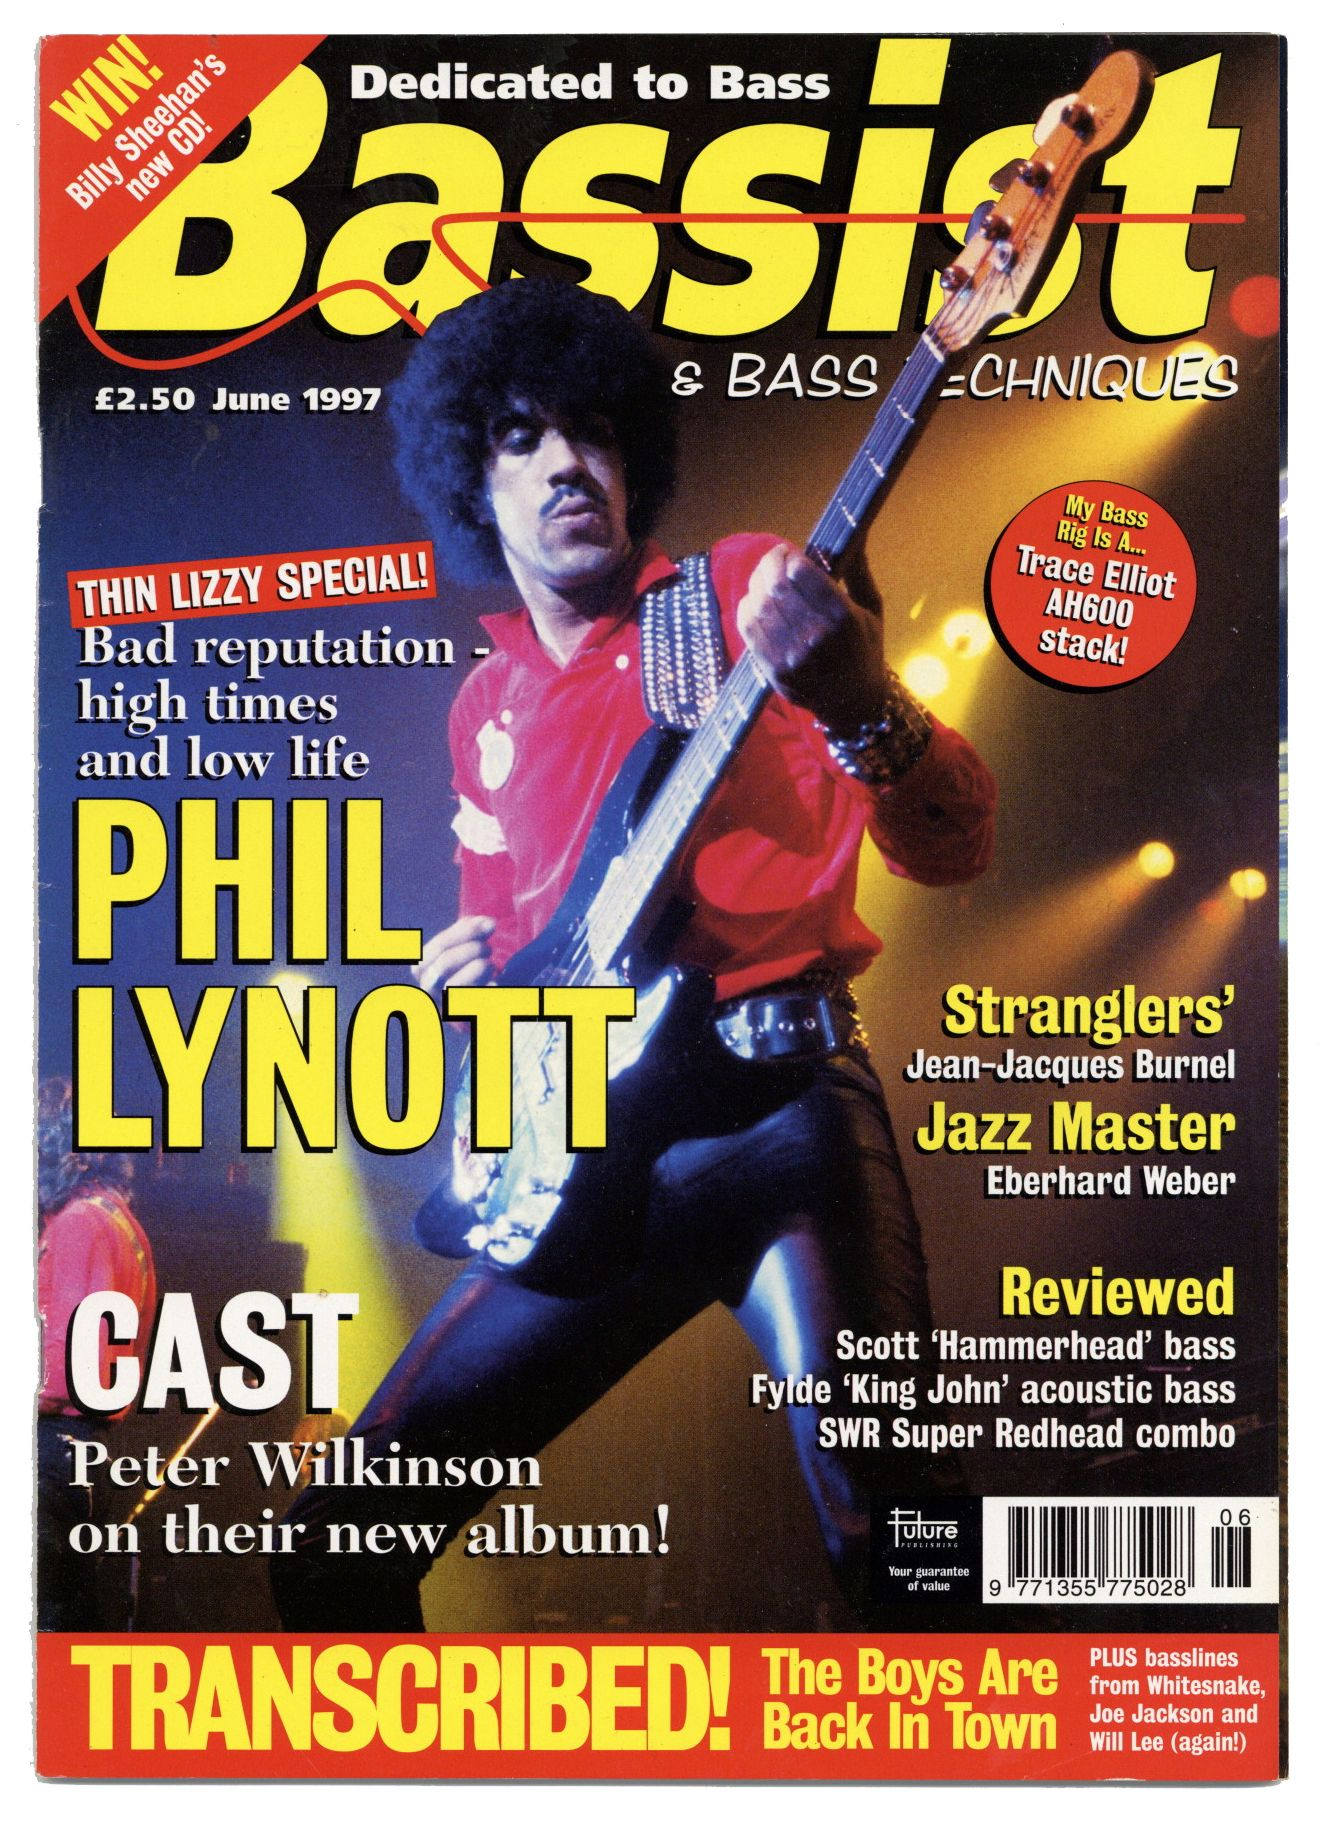 Bassist Magazine June 1997 Thin Lizzy Phil Lynott JJ Burnel of Stranglers Cast